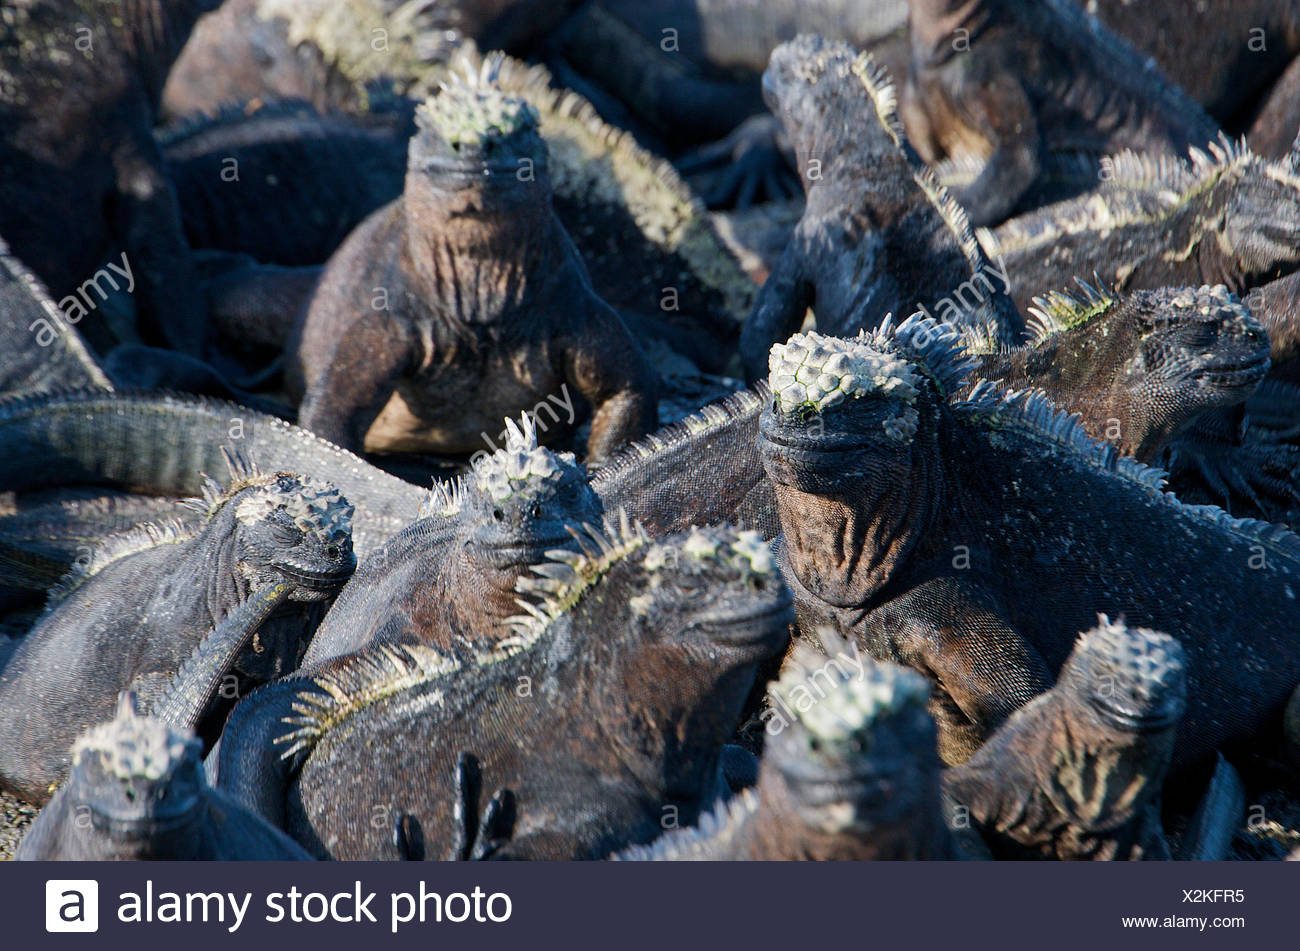 A pile of marine iguanas soak up the morning sun. - Stock Image